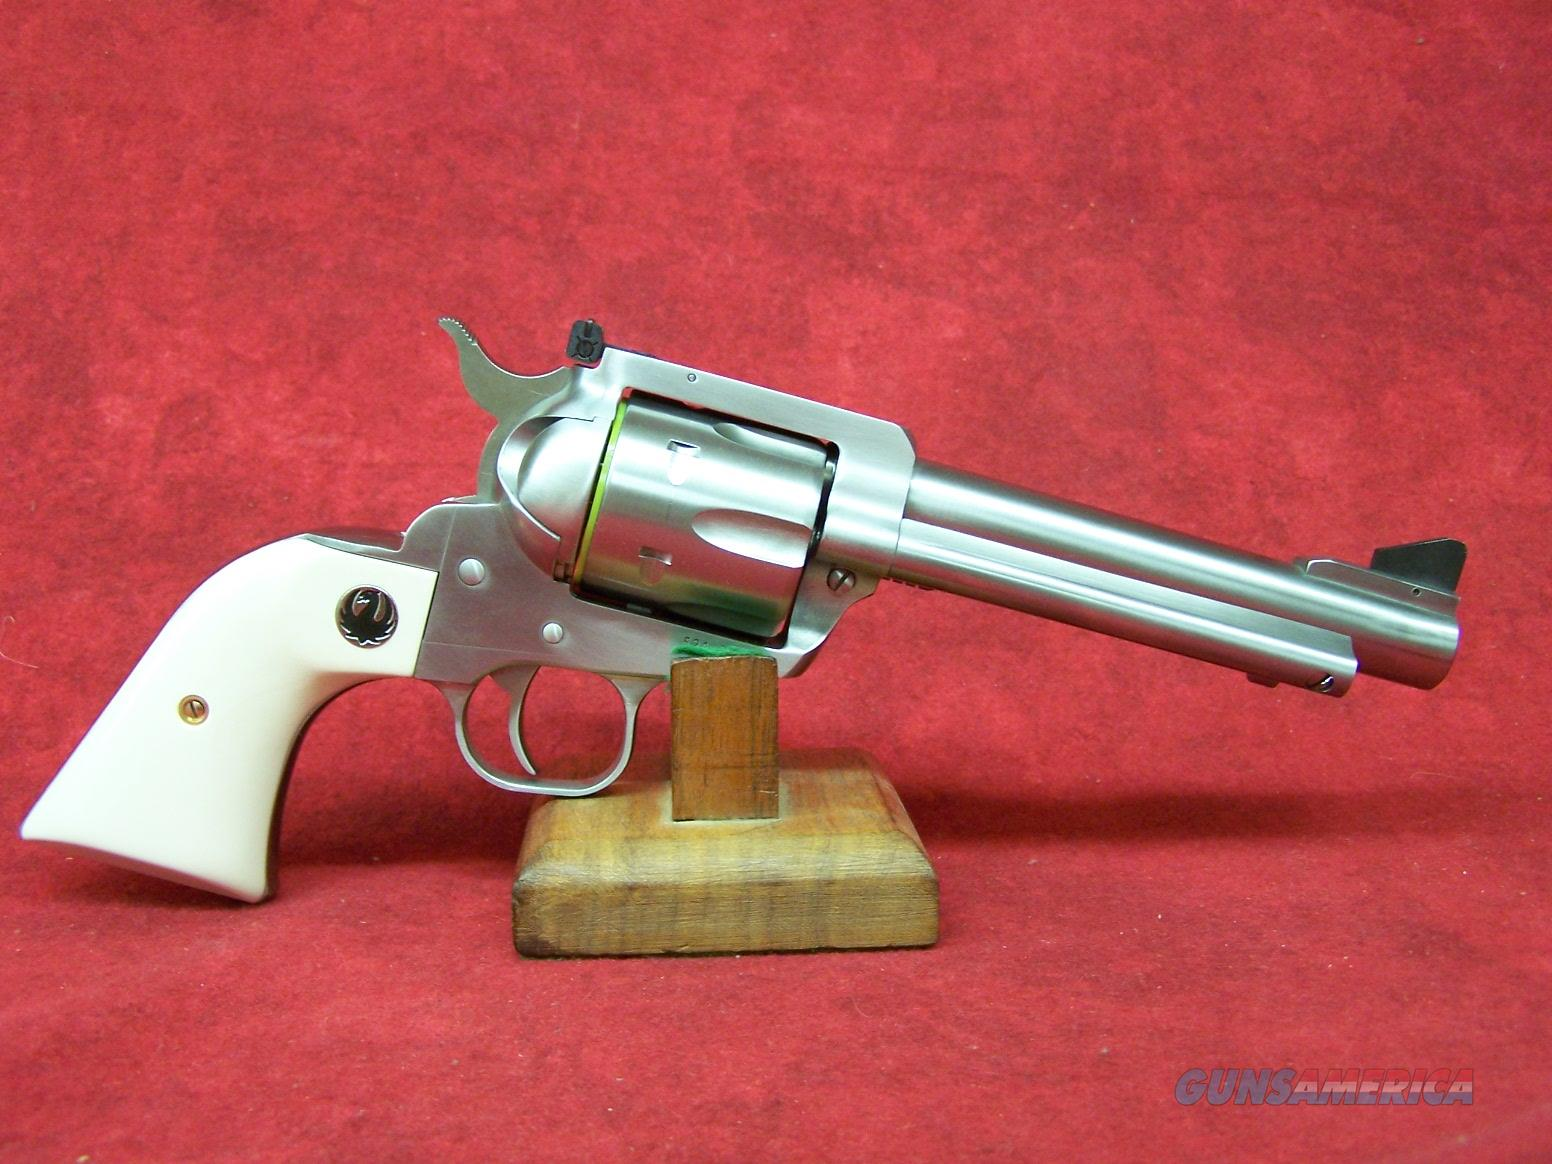 "RUGER BLACKHAWK FLATTOP 45 ACP | 45 COLT SS/IVORY 5.5"" (05241)  Guns > Pistols > Ruger Single Action Revolvers > Blackhawk Type"